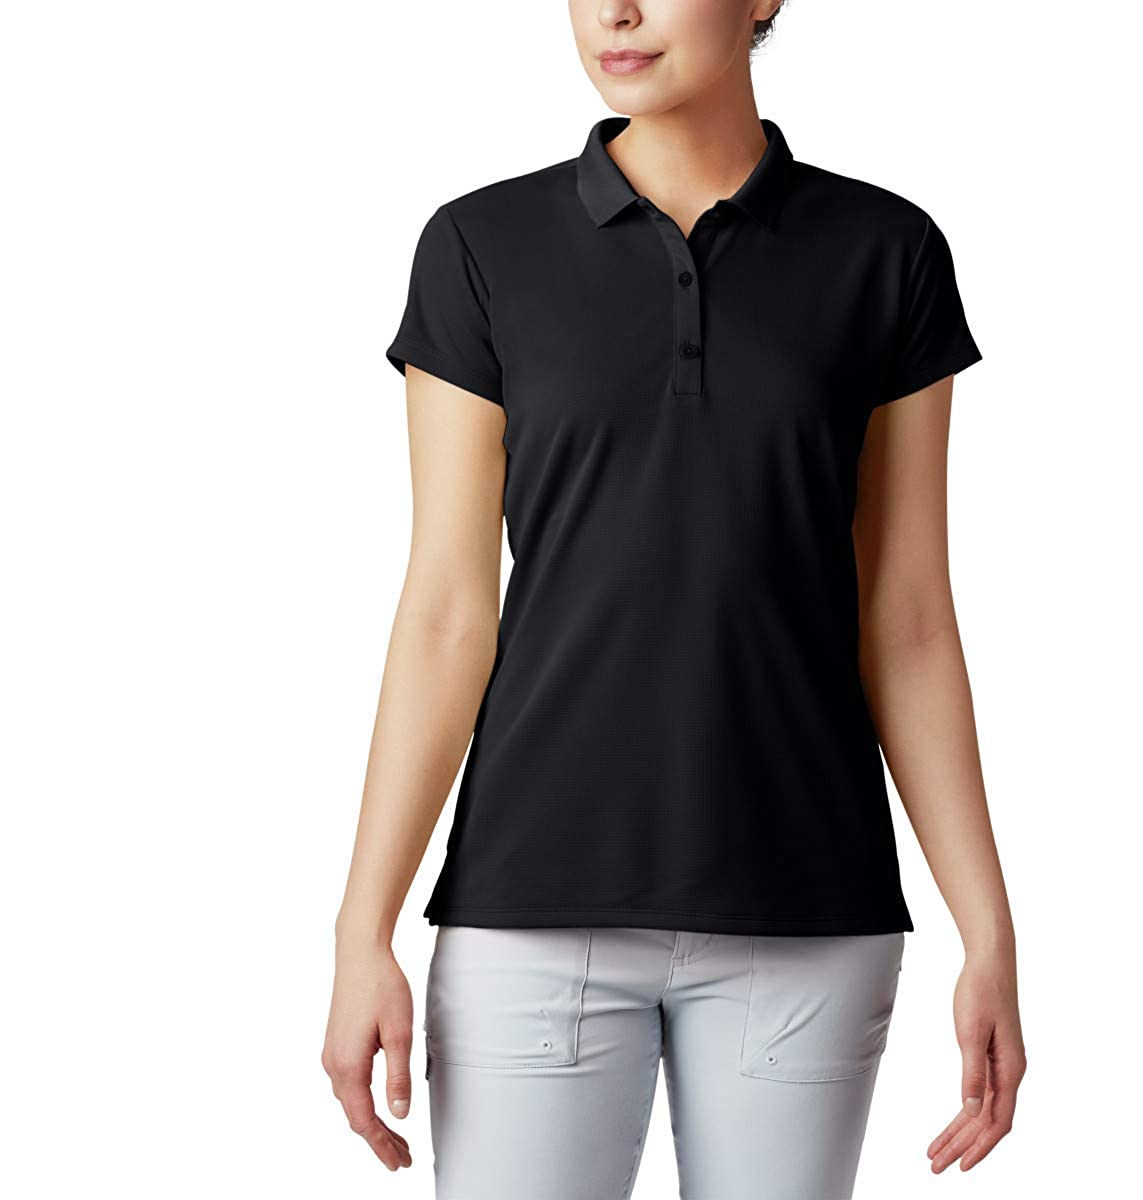 Colombian woman innisfree polo shirts with short sleeves